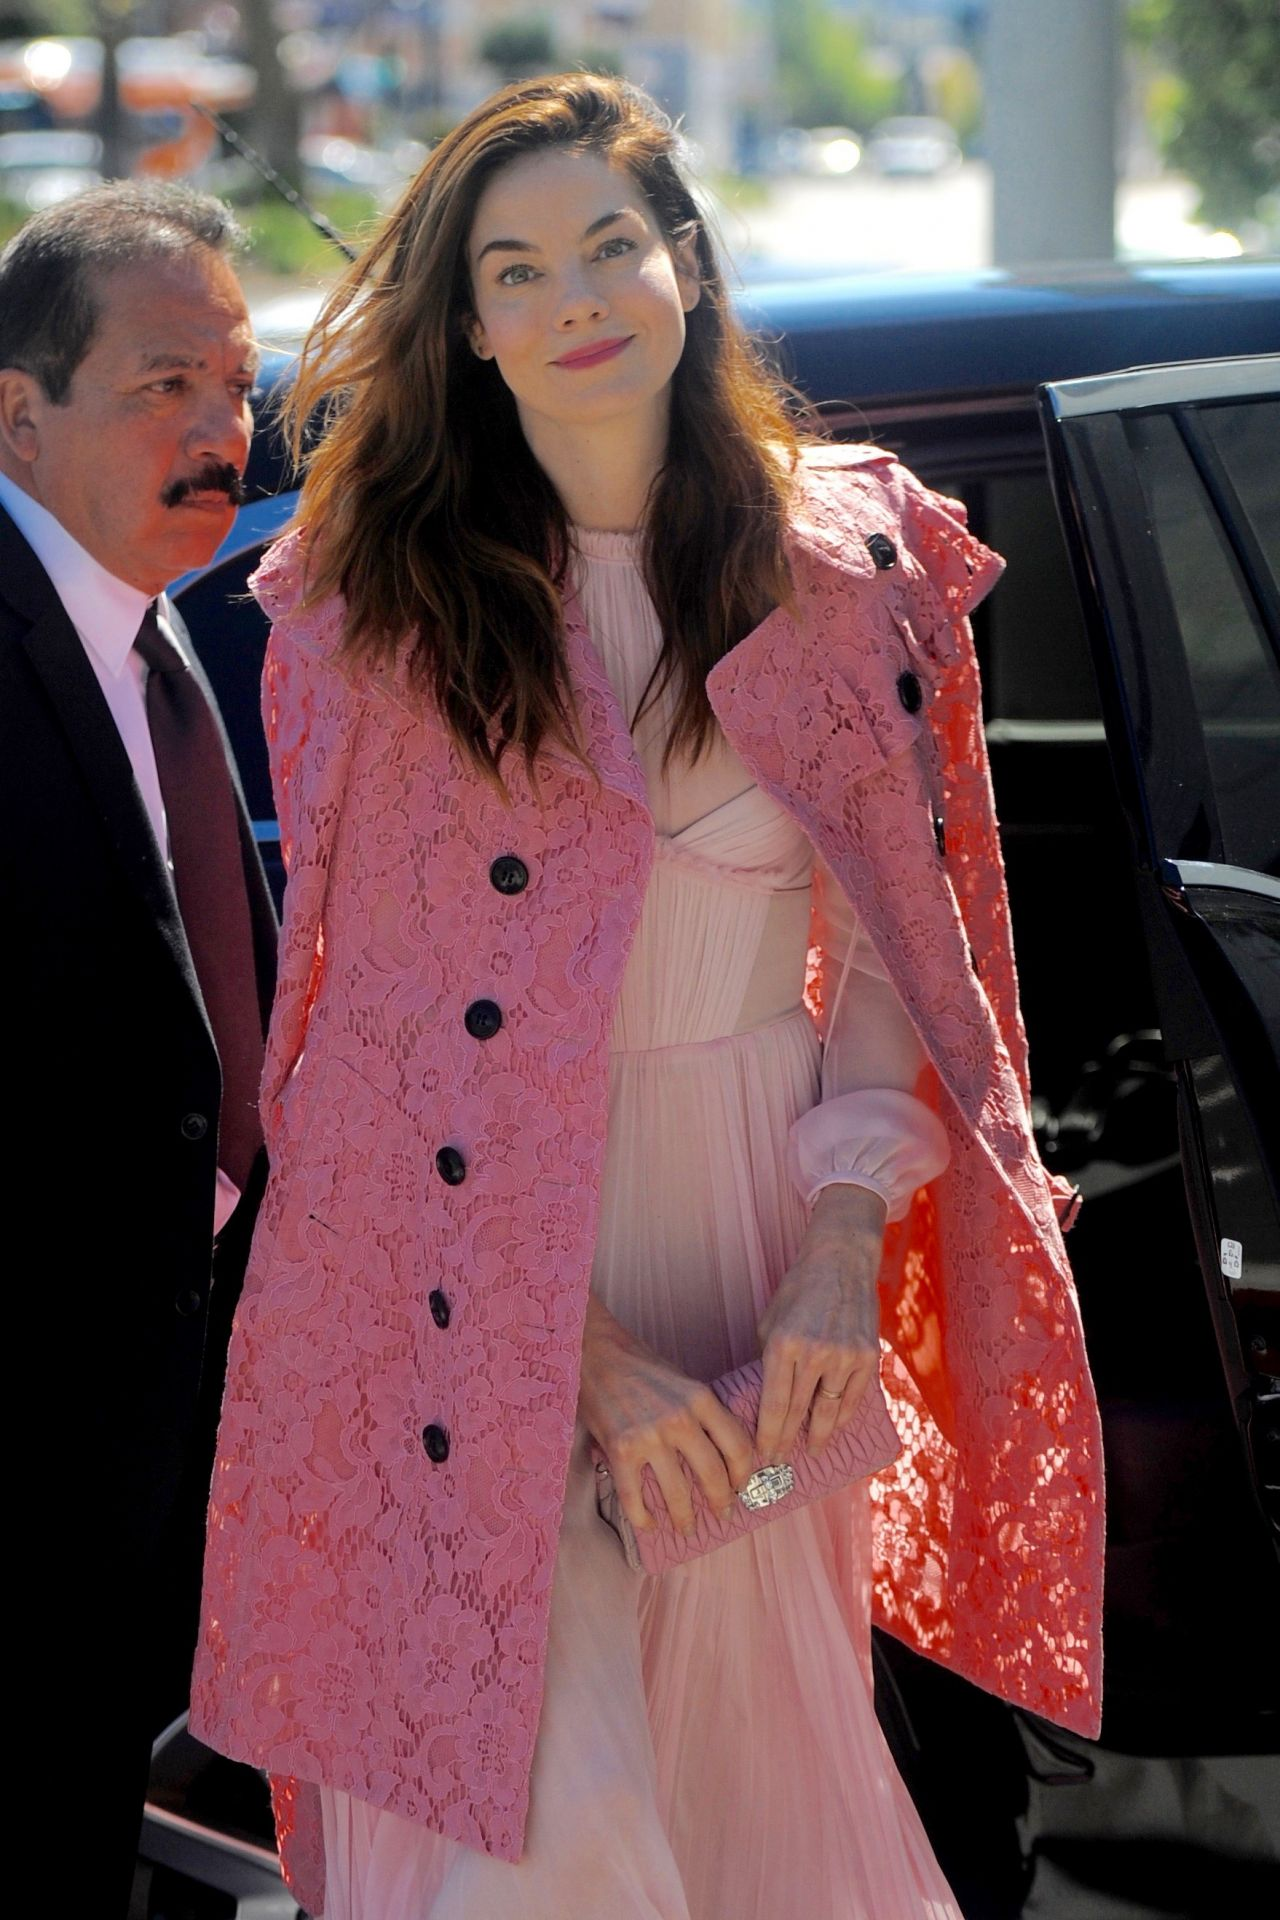 Michelle Monaghan Pretty in Pink - Arrives for an NBC Special Event in West Hollywood 3/6/ 2017